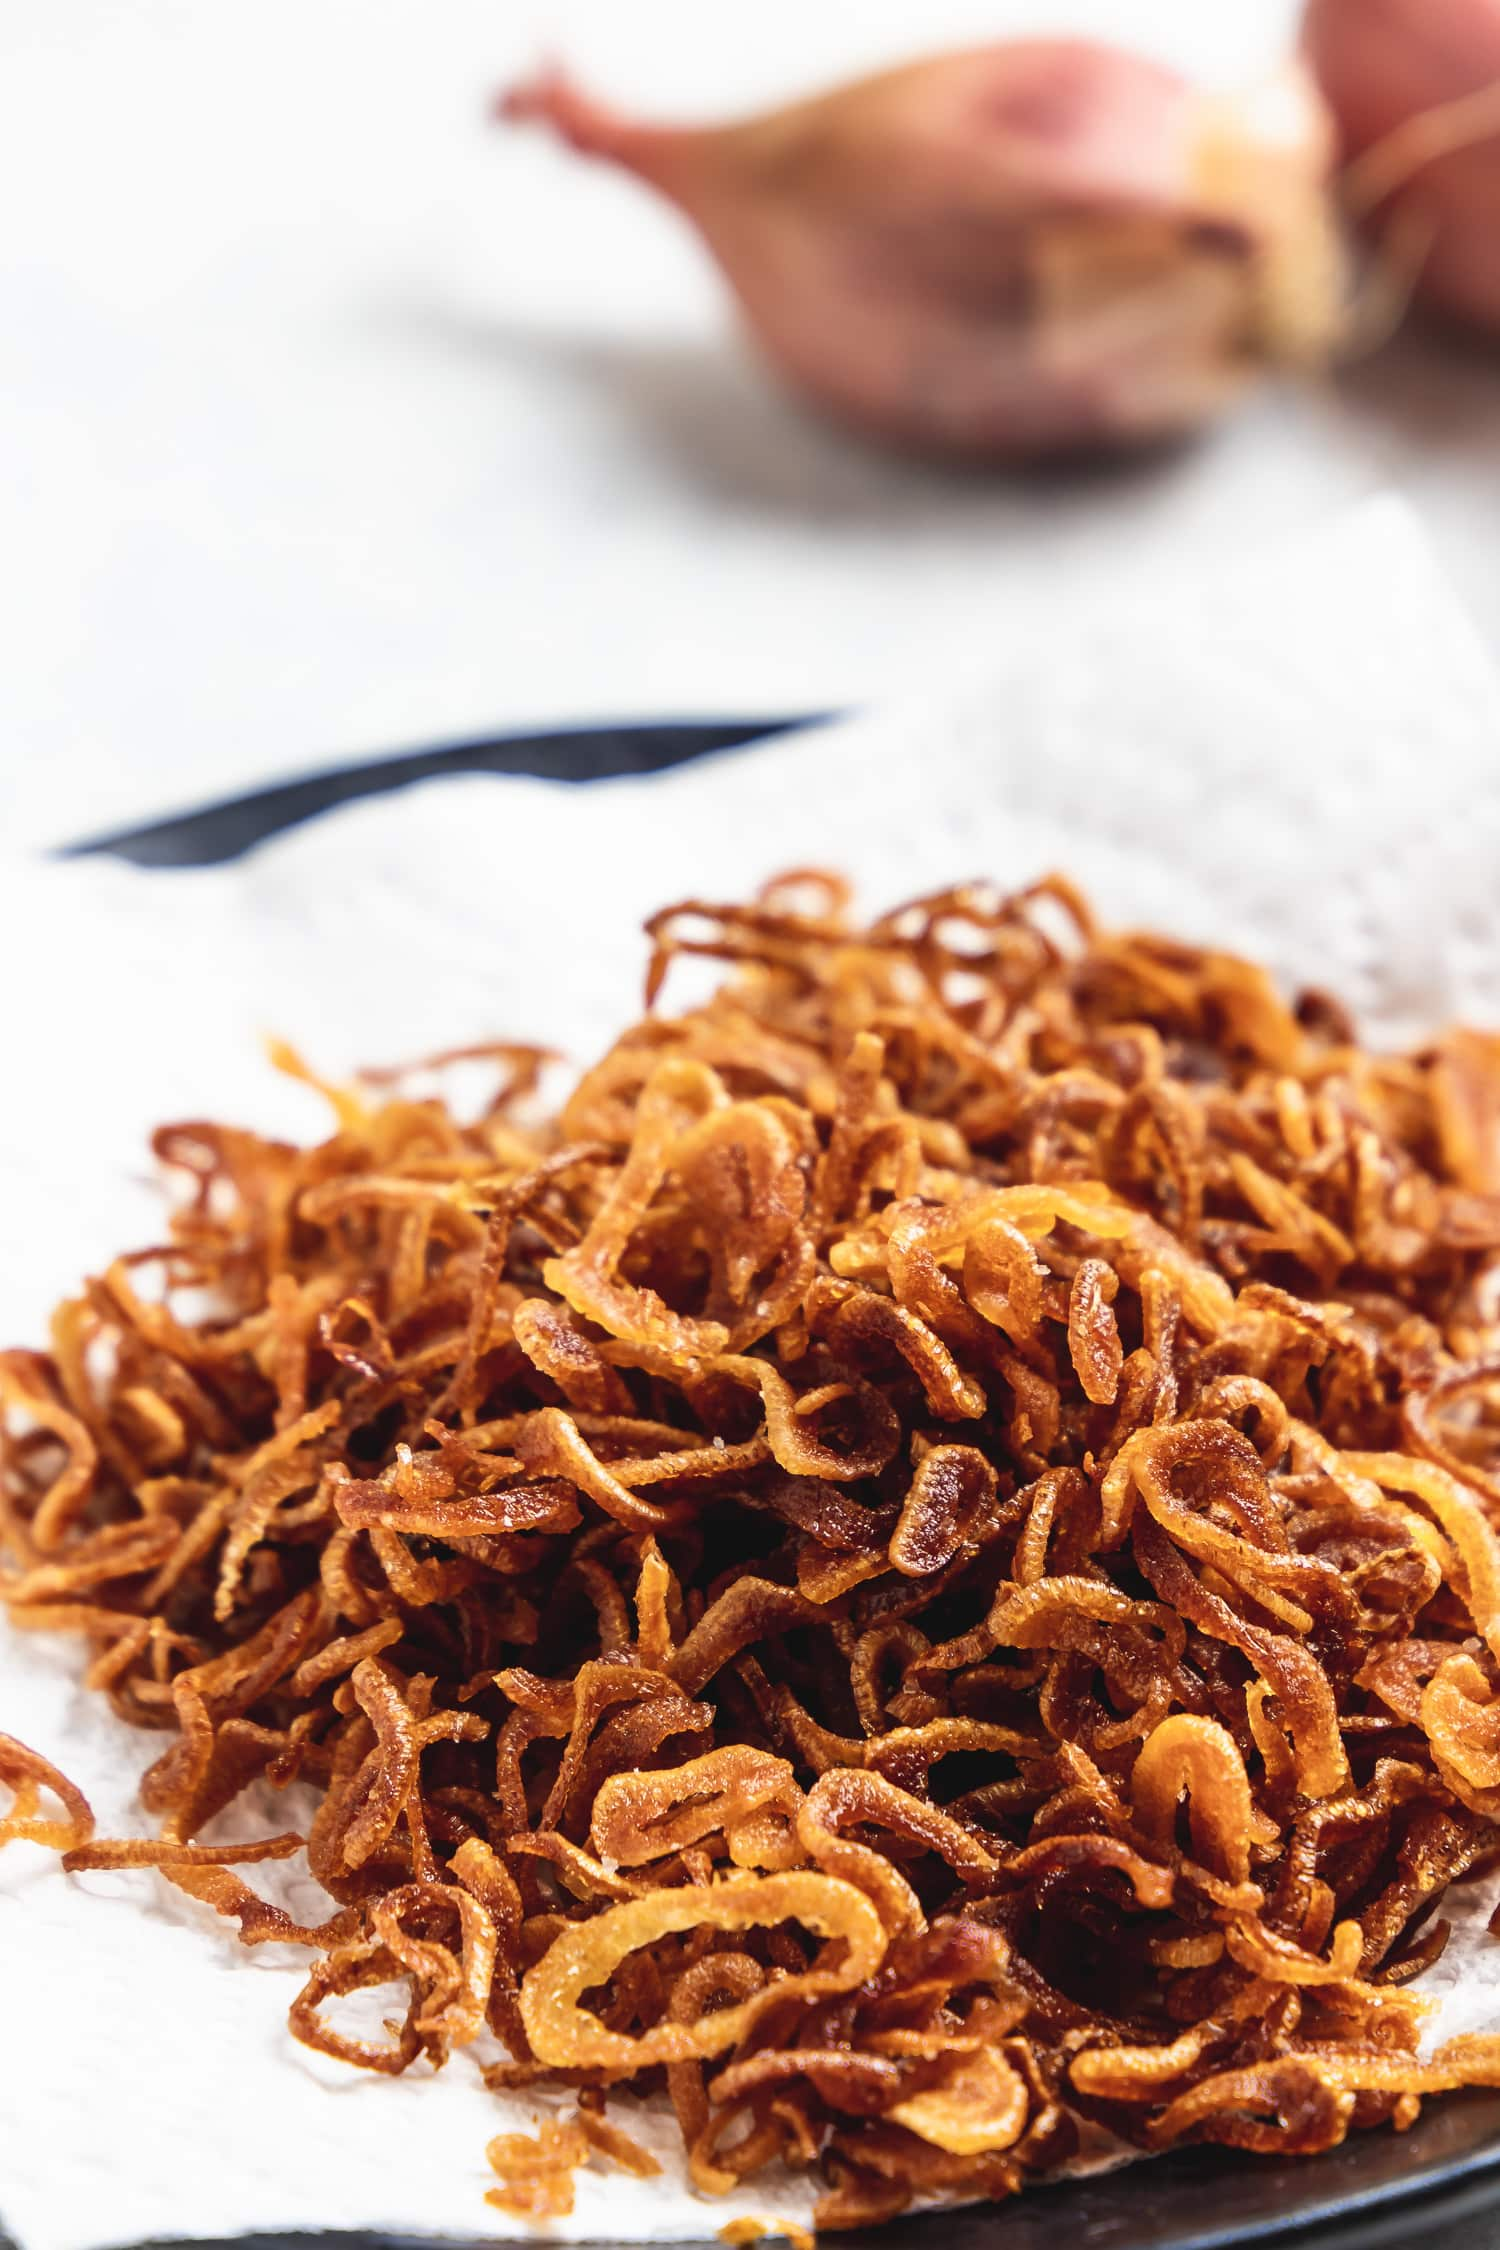 crispy shallots draining on paper towels